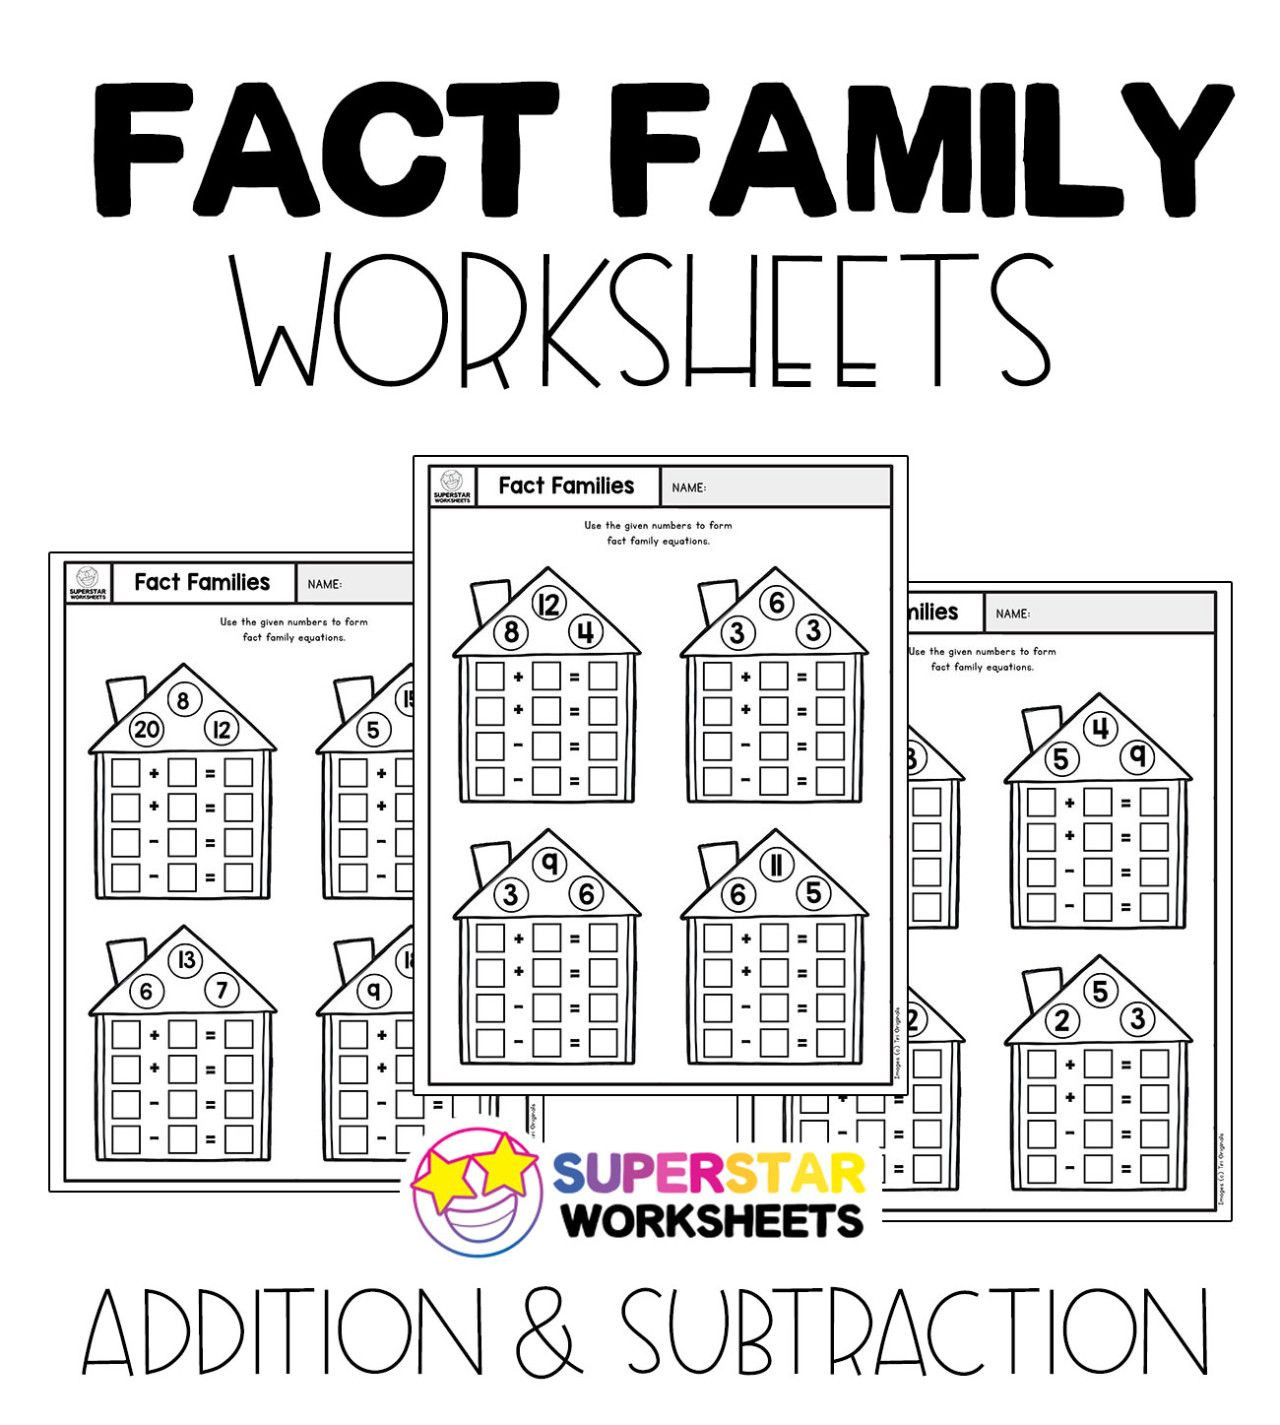 Fact Family Worksheets 1st Grade Free Fact Family Worksheets for Addition and Subtraction